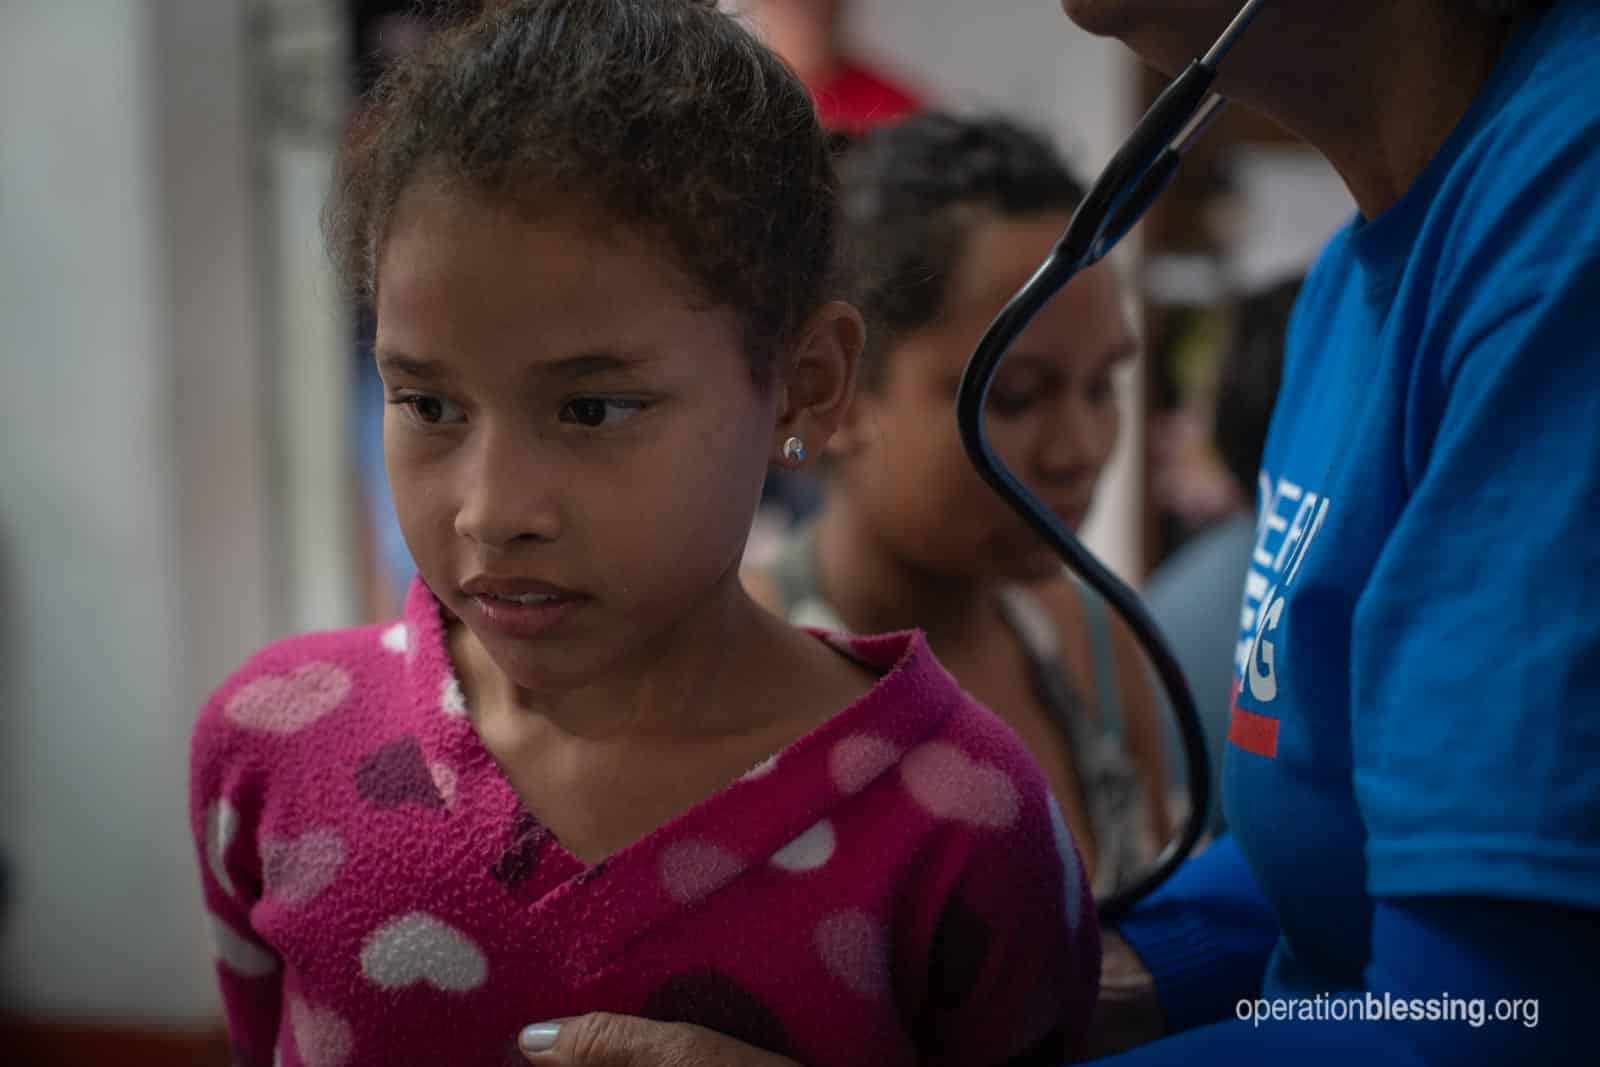 An Operation Blessing doctor checks a young girl near the Guatemalan border.